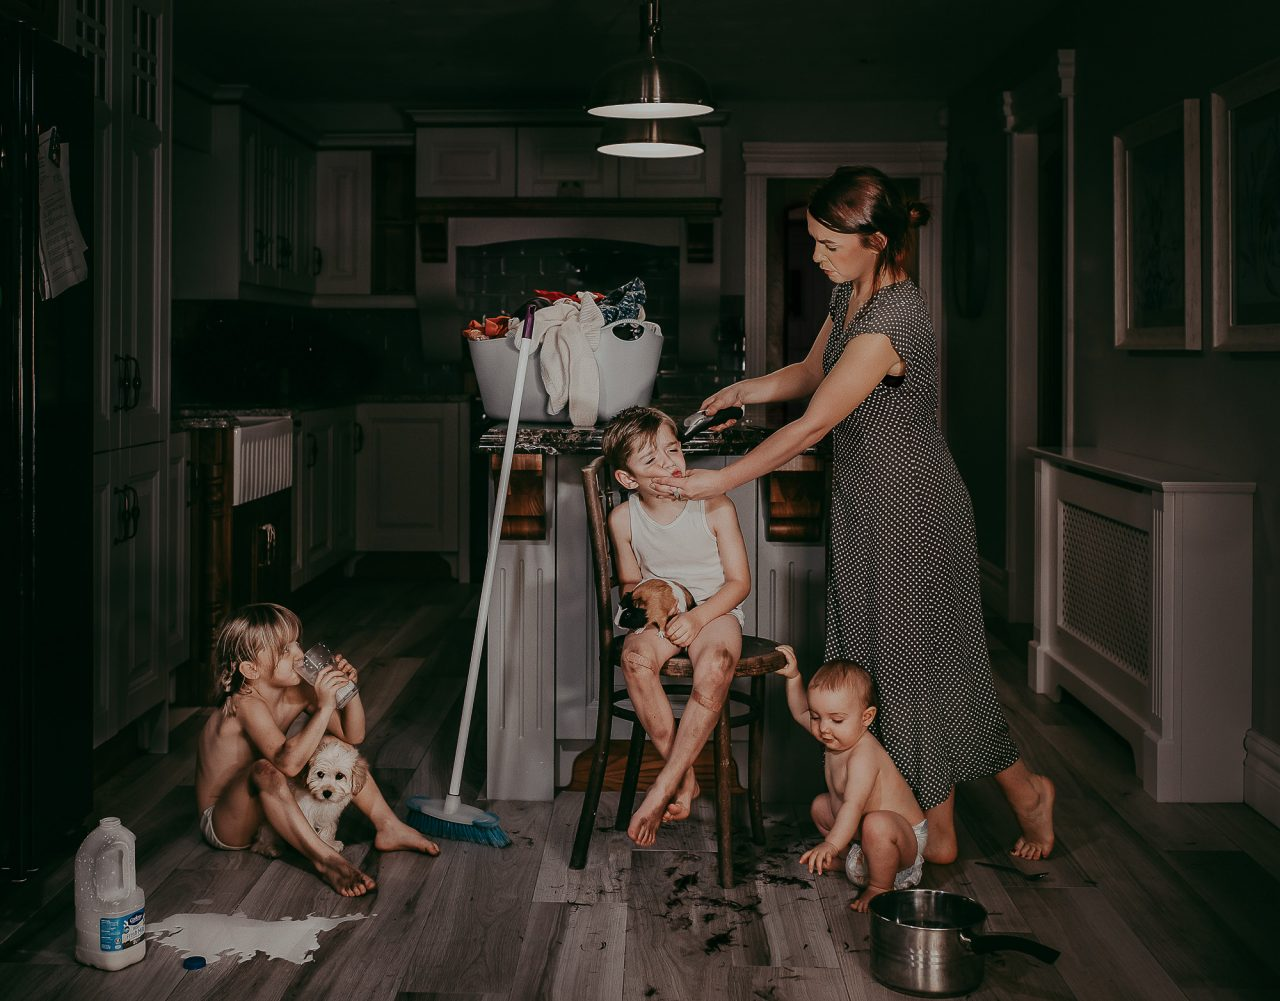 Kitchen scene of a mother and her three small children. The youngest two are sat on the ground while the eldest, a boy, sits on a chair as the mother cuts his hair with an electric trimmer.